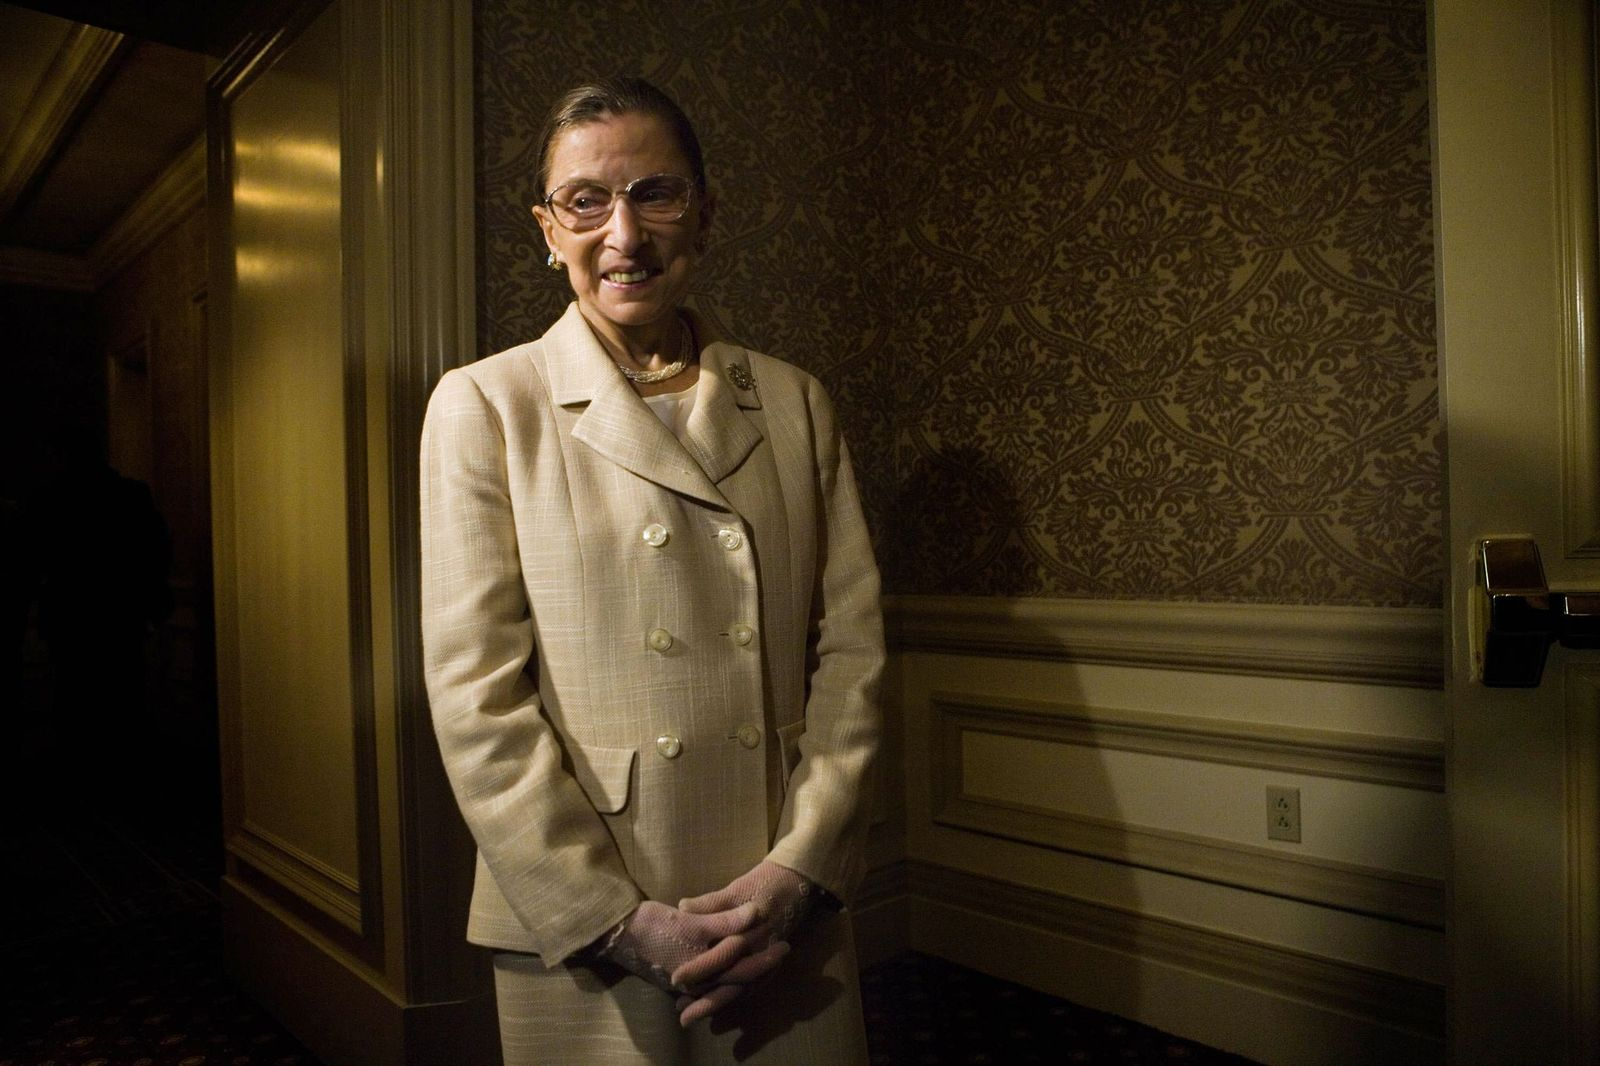 USSupreme Court Justice Ruth Bader Ginsburg at a dinner to honor Chile's first female presidentMichelle Bachelet onMay 8, 2006. | Photo: Getty Images